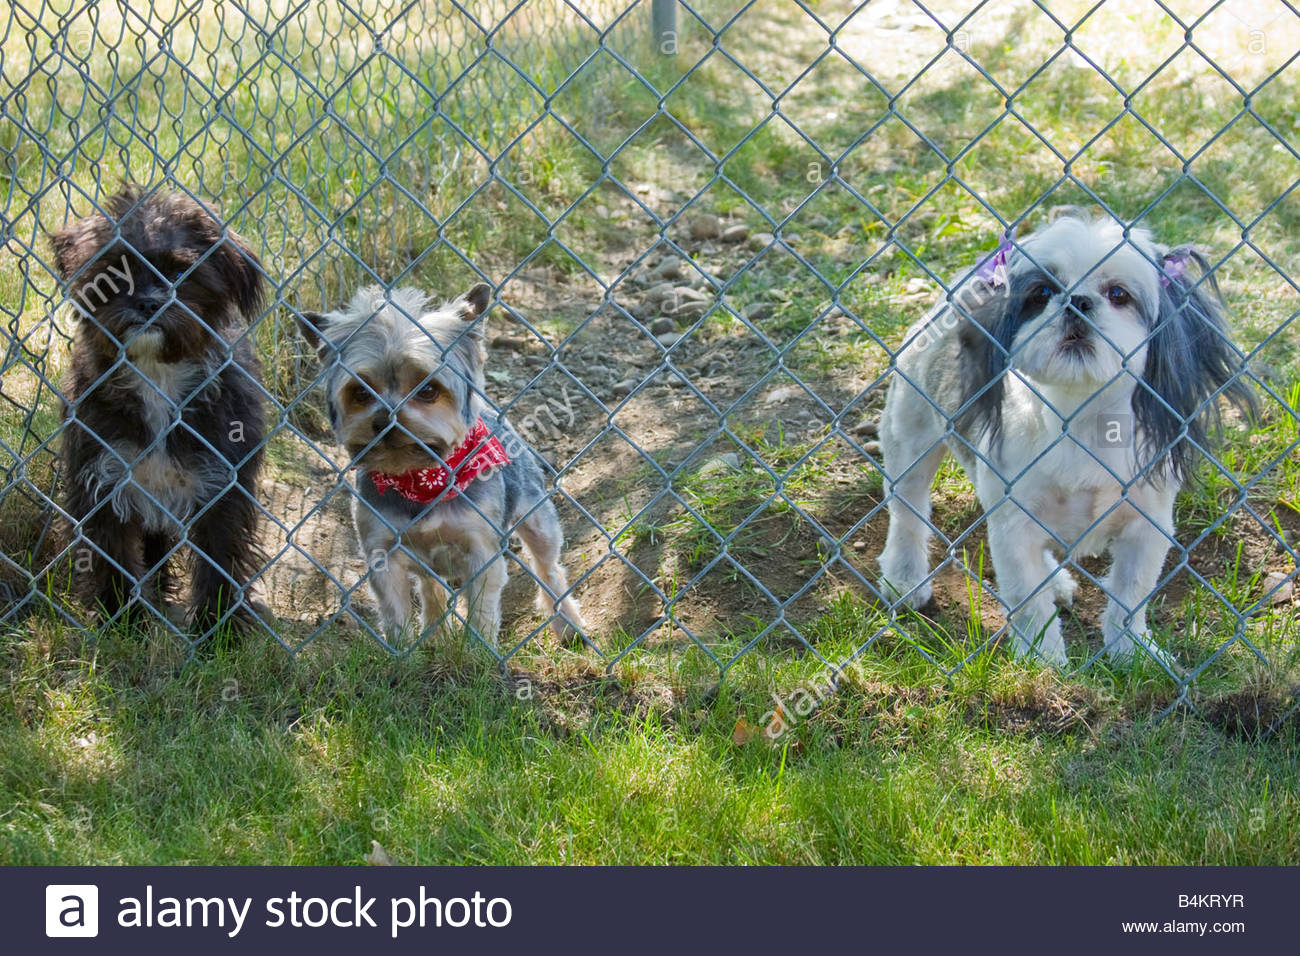 Three small dogs behind a chain link fence. - Stock Image